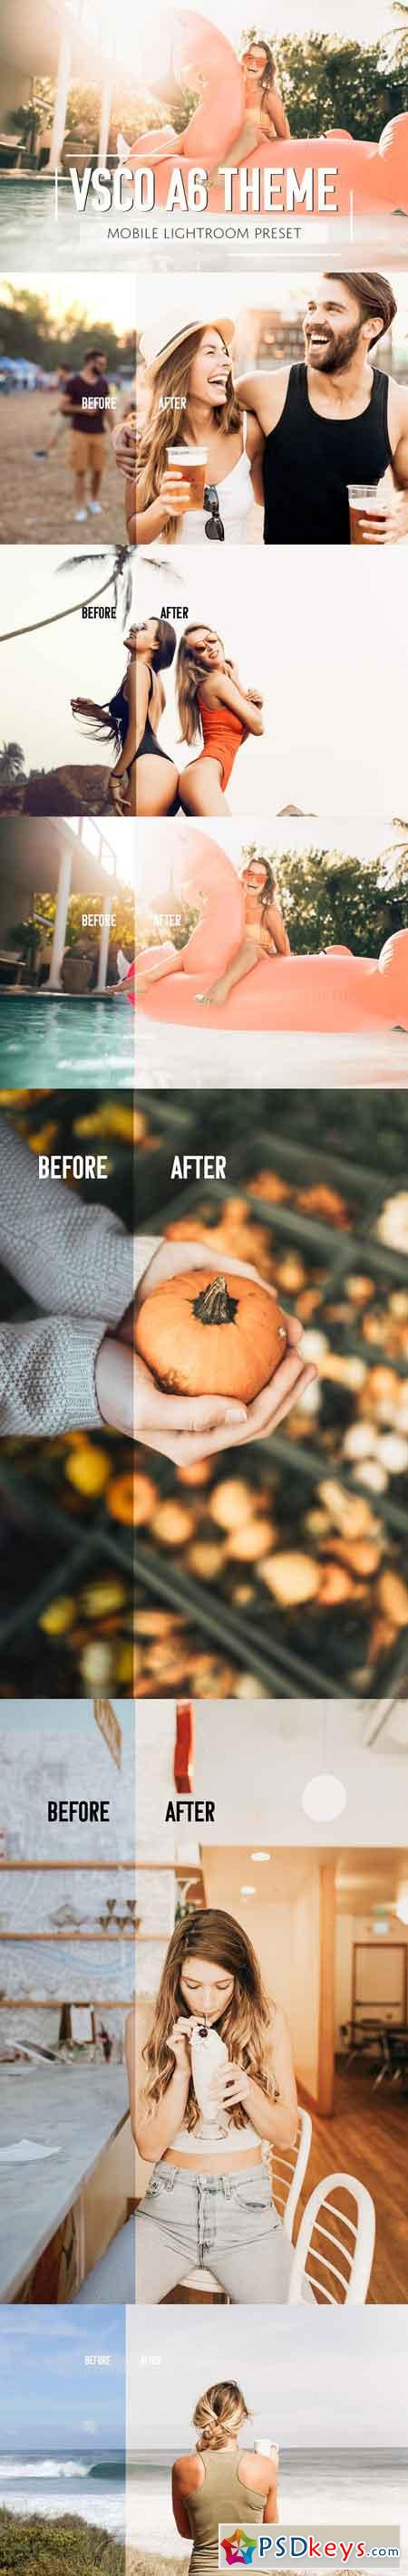 Mobile Lightroom Preset Orange 2858982